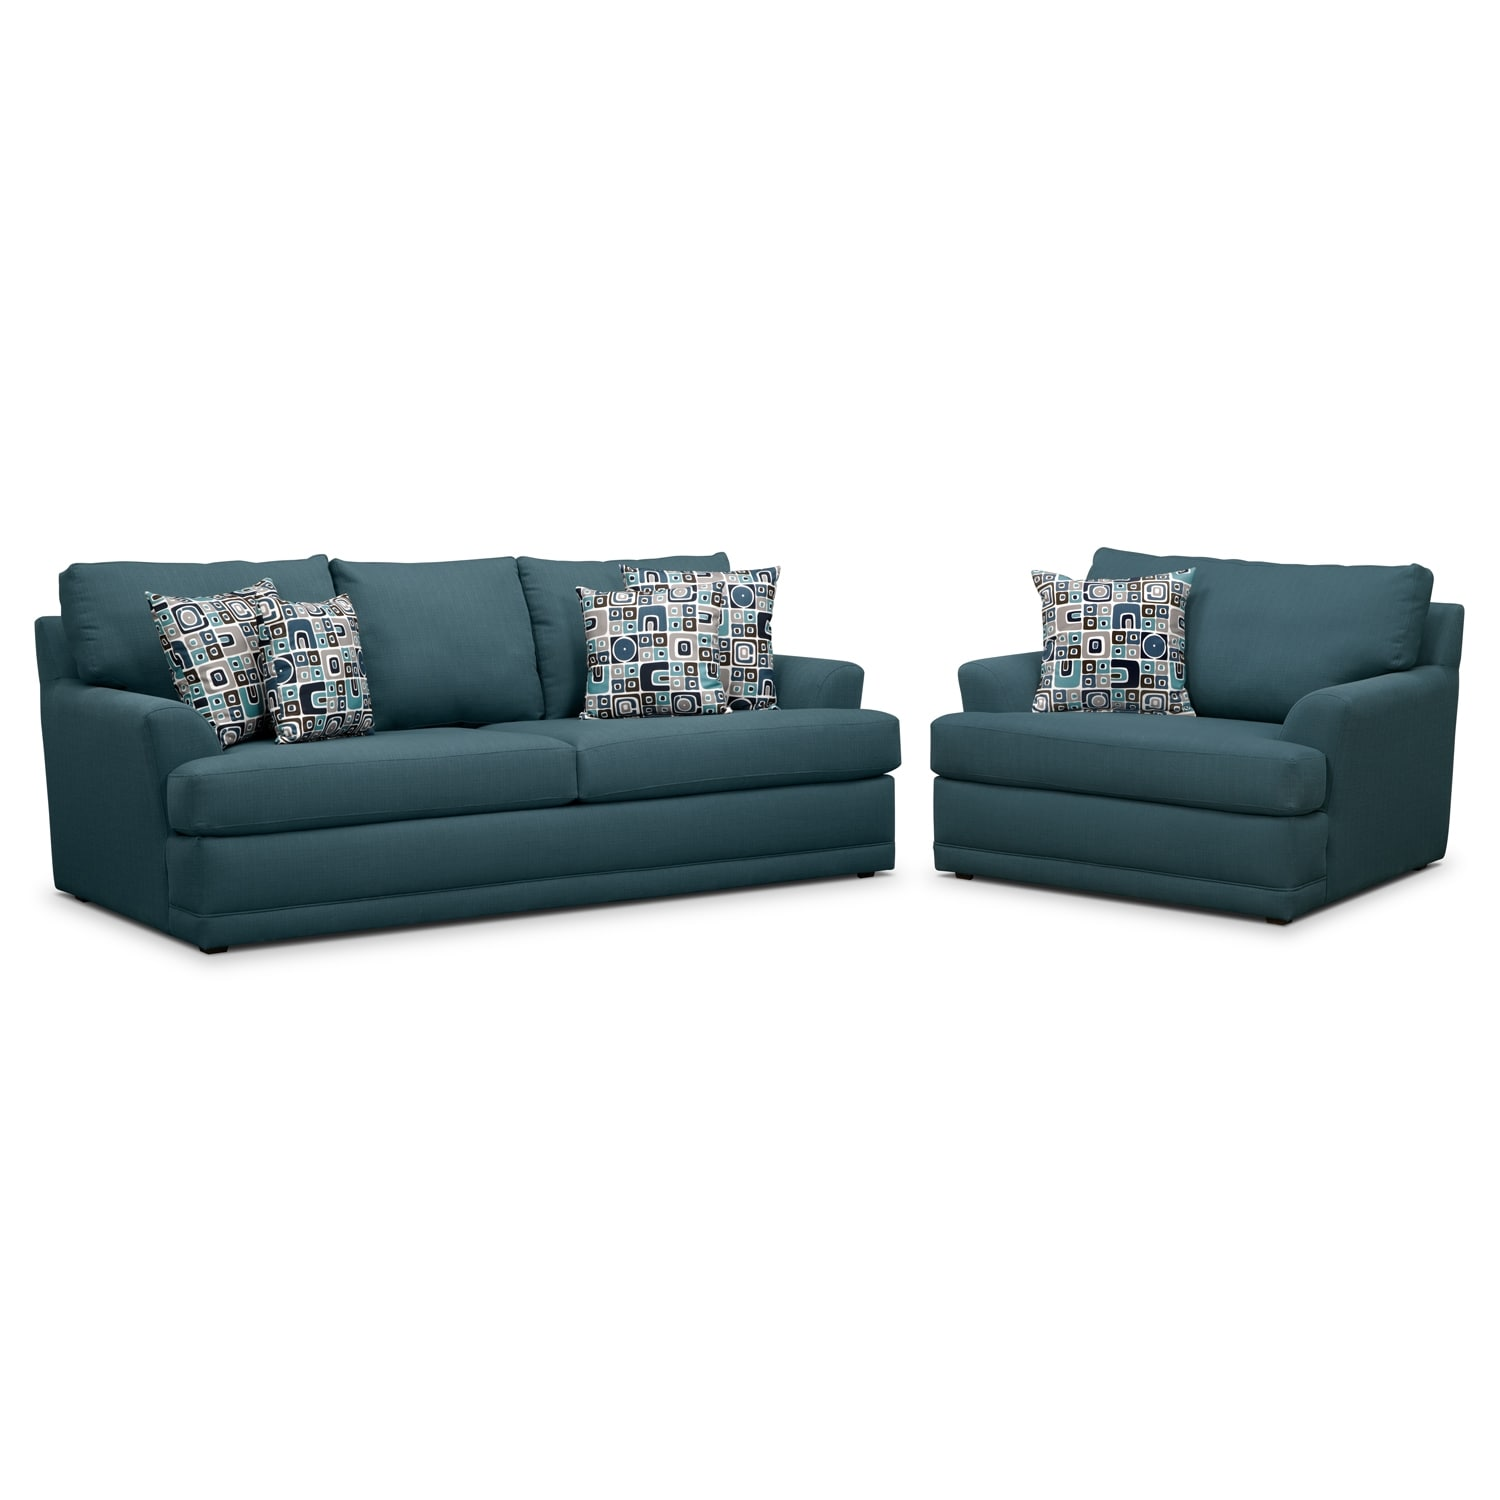 Living Room Furniture - Kismet 2 Pc. Sleeper Living Room with Chair and a Half and Memory Foam Mattress - Teal